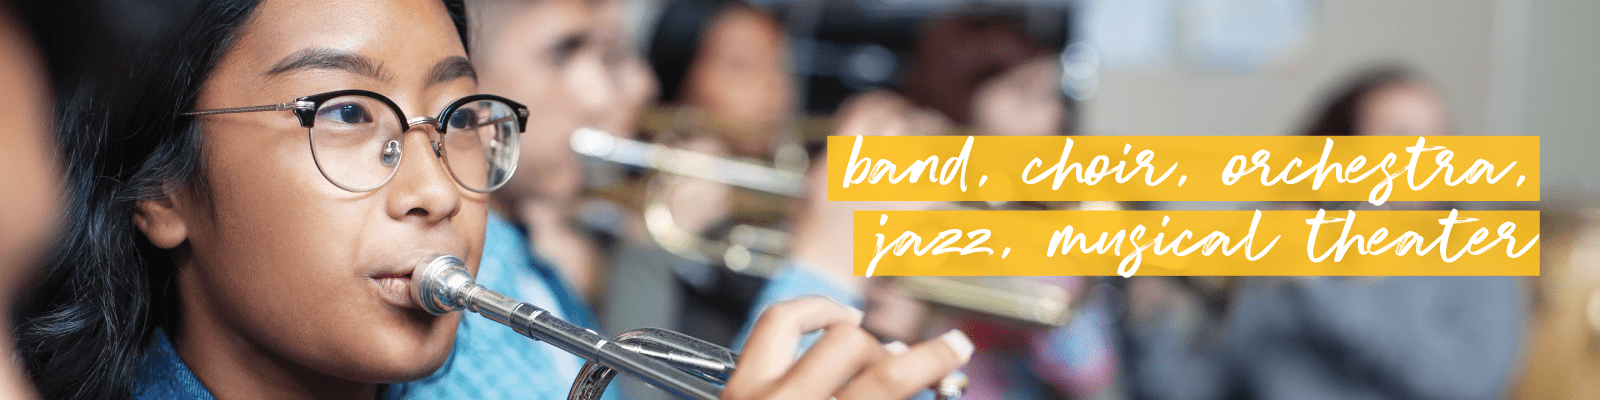 Closeup of children playing brass instruments, and the words 'band, choir, orchestra, jazz, musical theater'